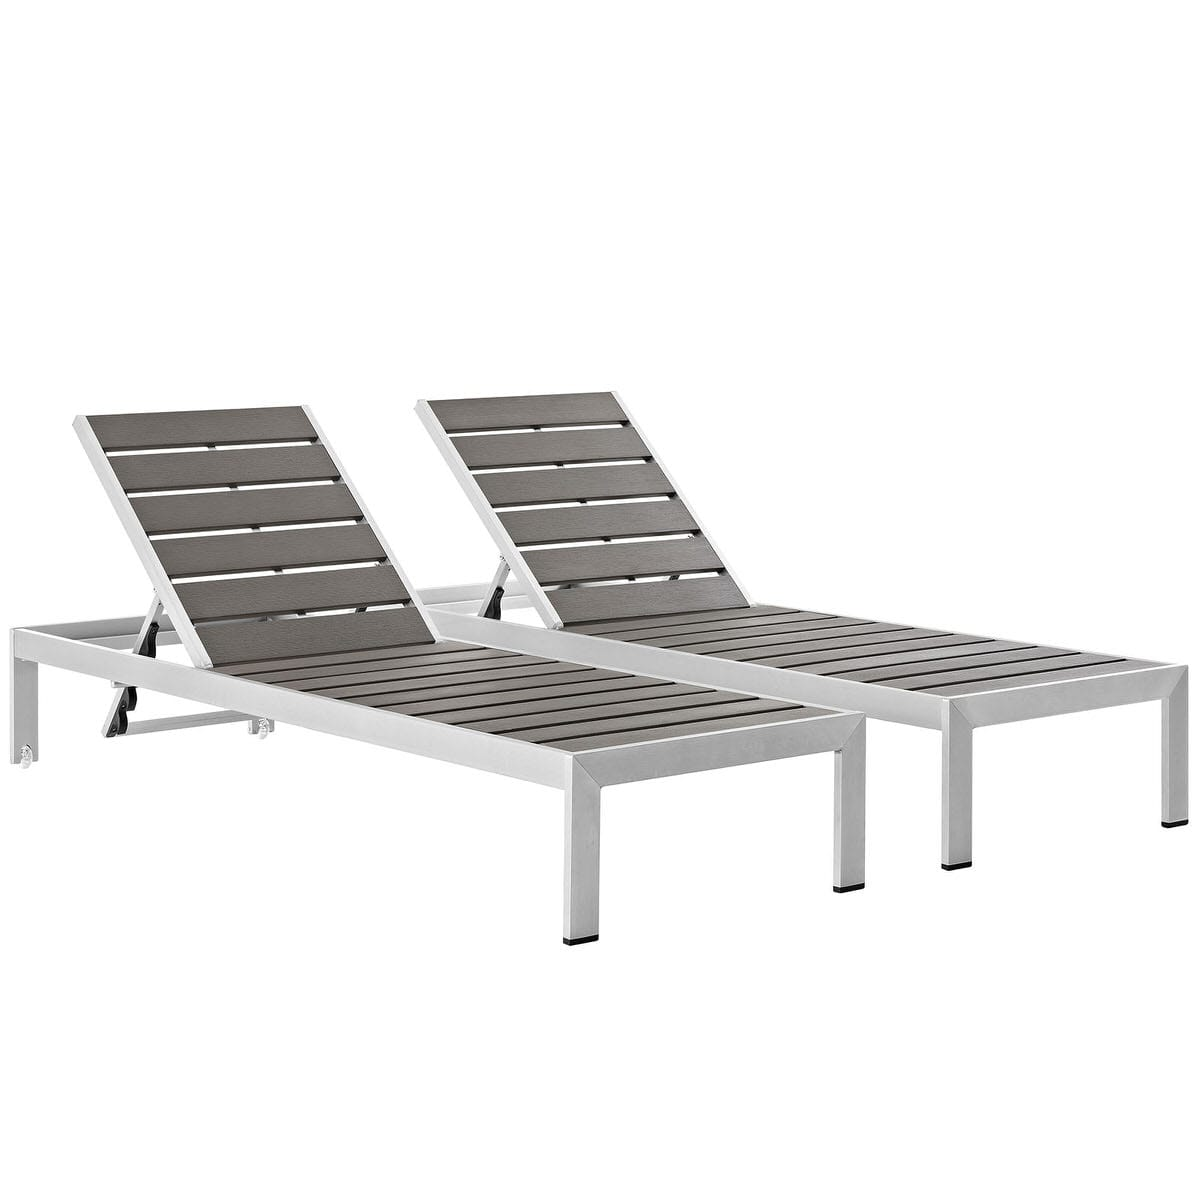 Incredible Shore Set Of 2 Outdoor Patio Aluminum Chaise Silver Gray By Modern Living Theyellowbook Wood Chair Design Ideas Theyellowbookinfo